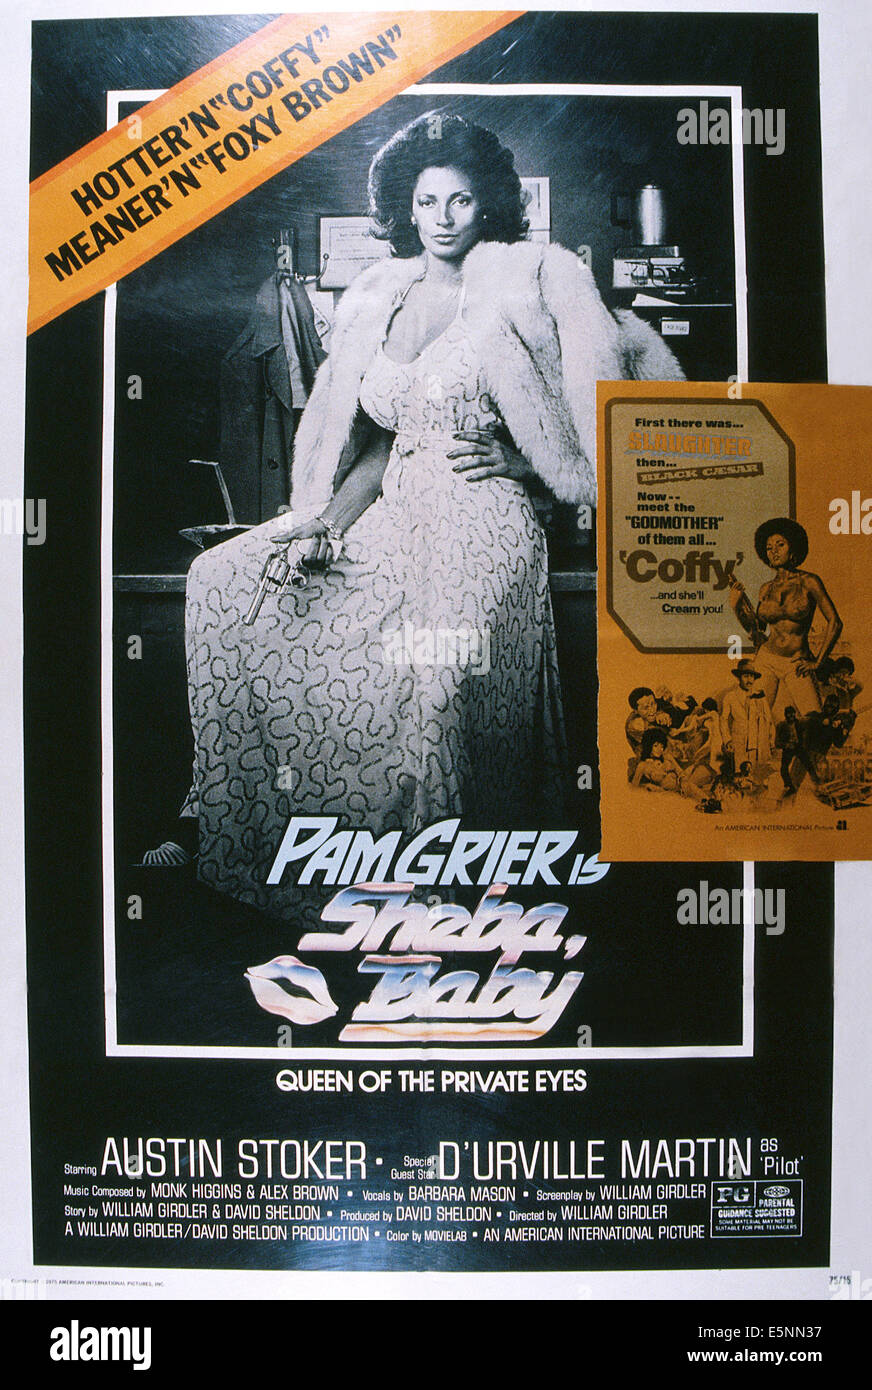 SHEBA, BABY, US poster, Pam Grier, 1975 - Stock Image